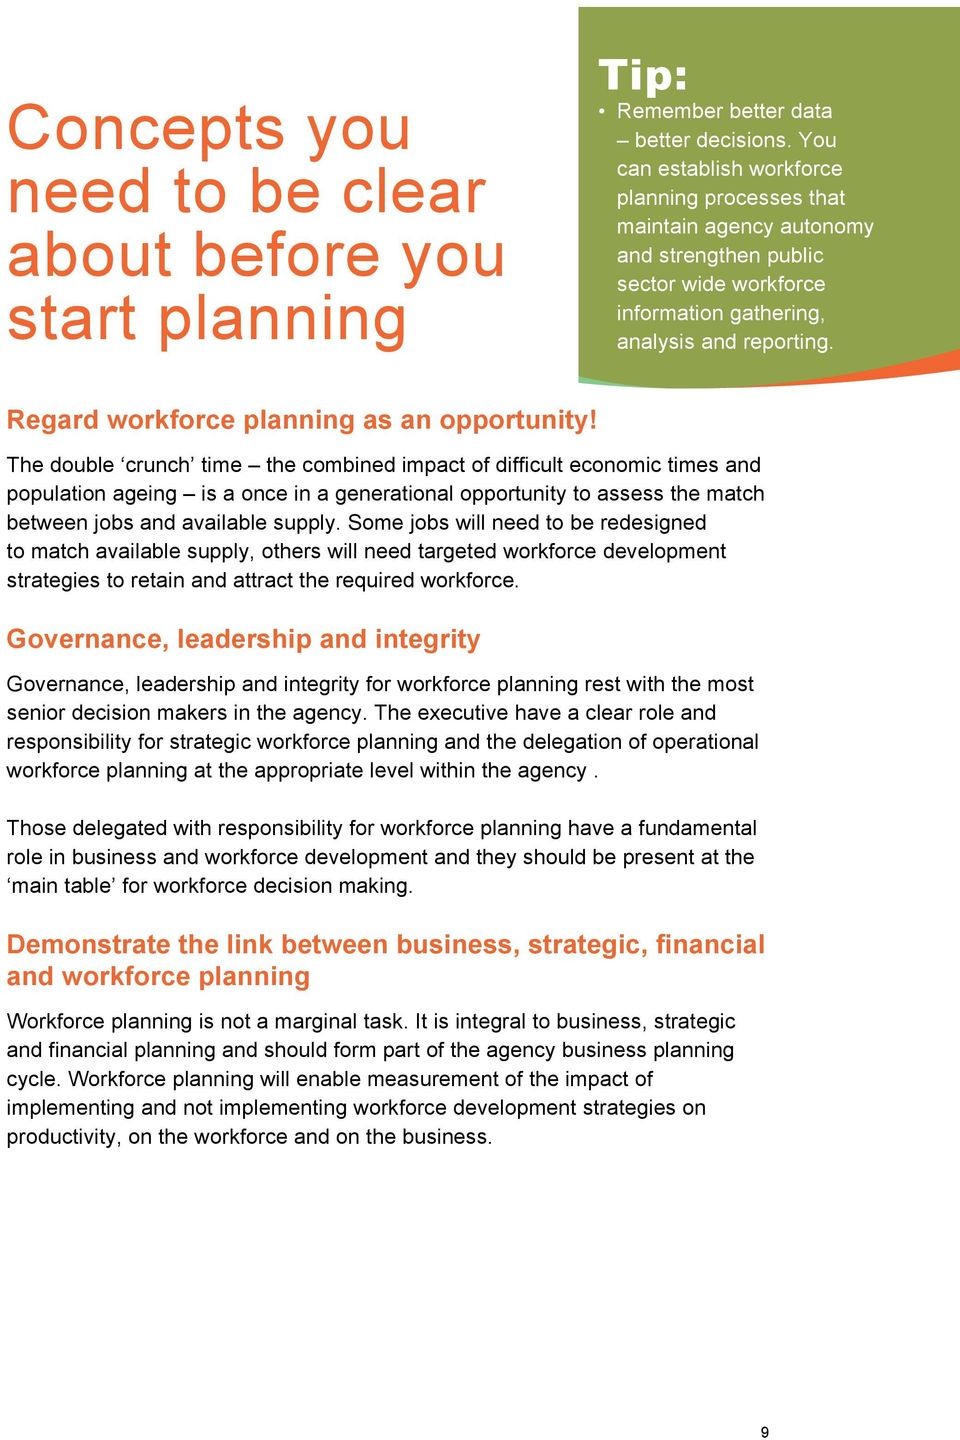 Regard workforce planning as an opportunity!